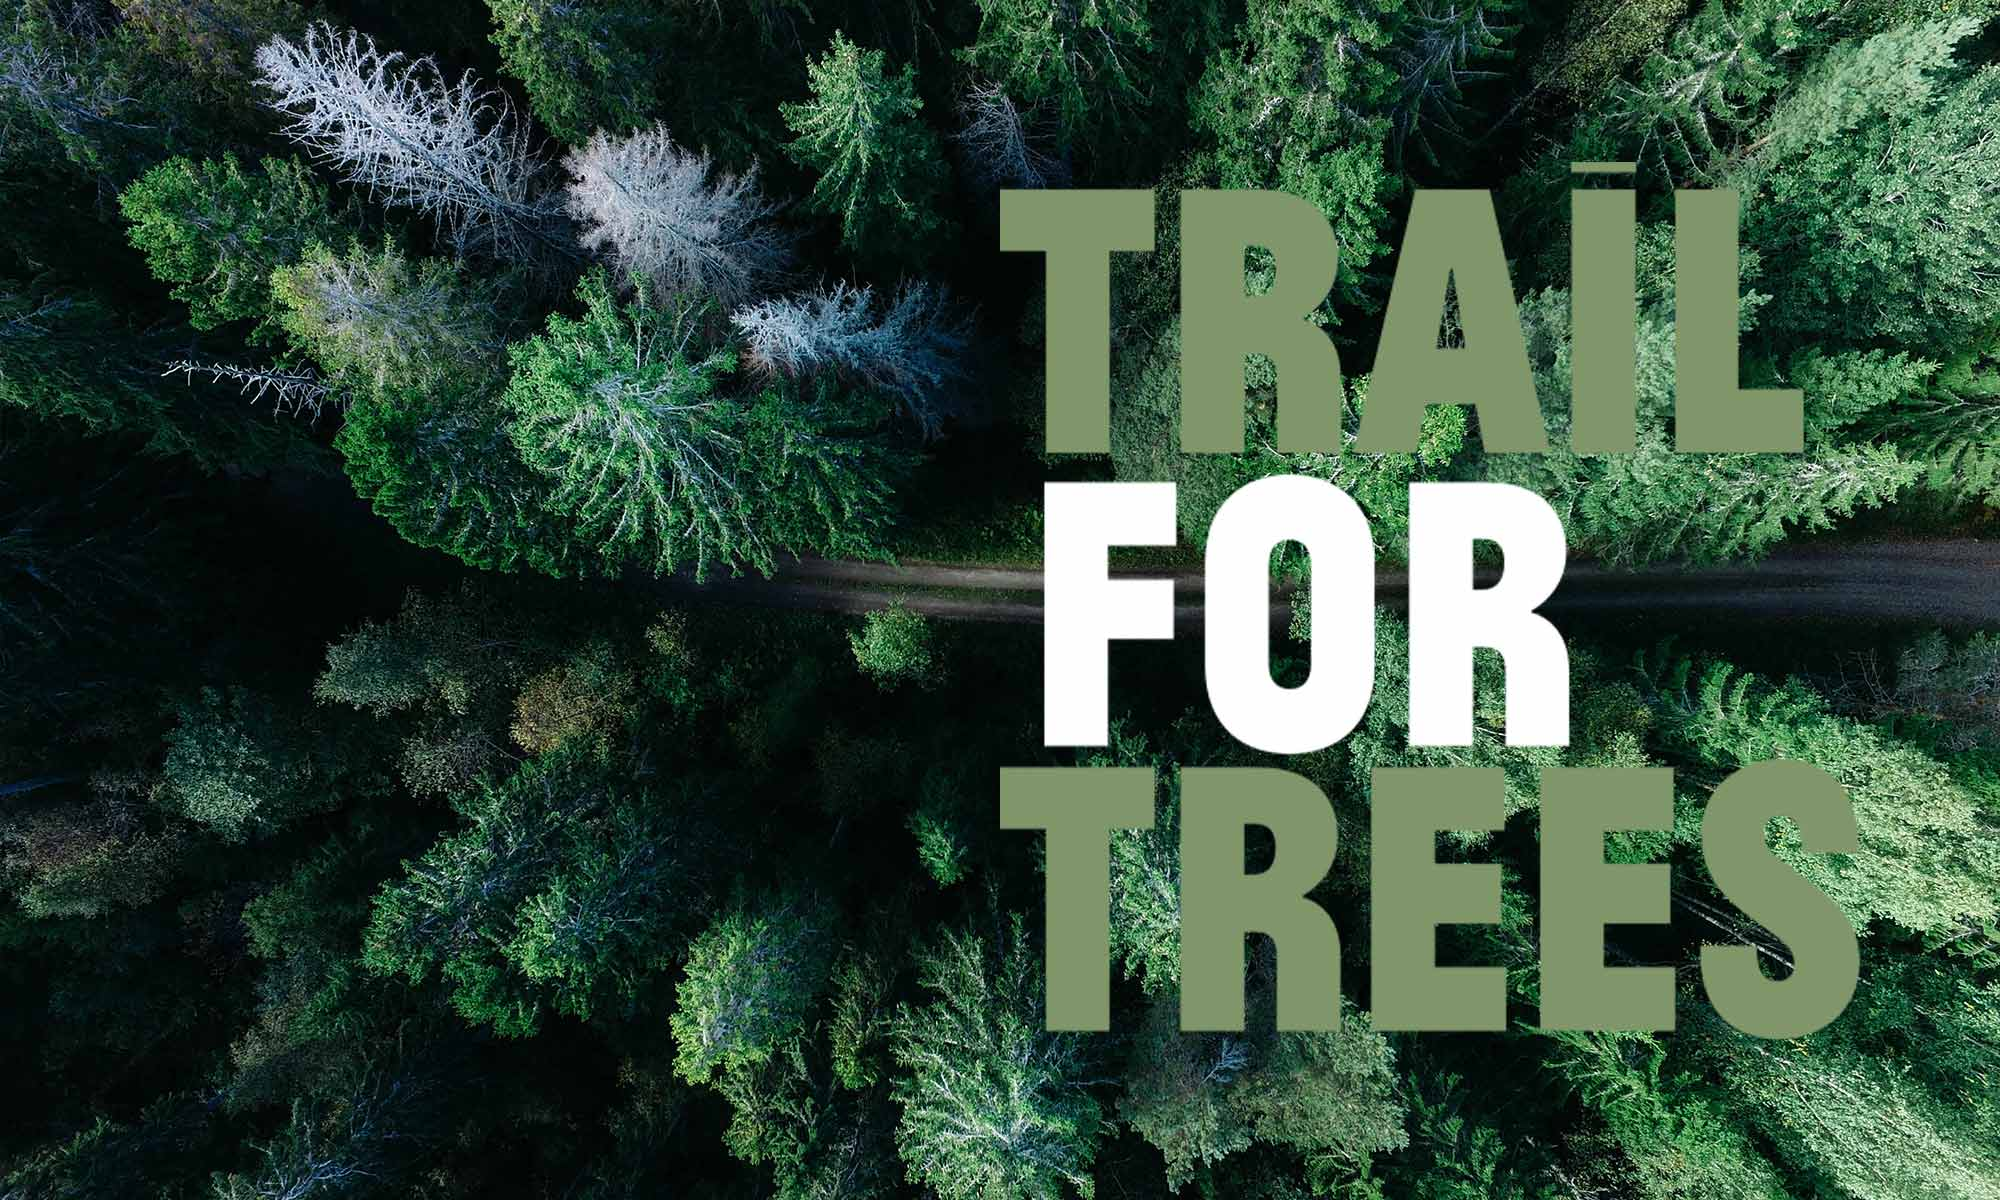 Trail for trees